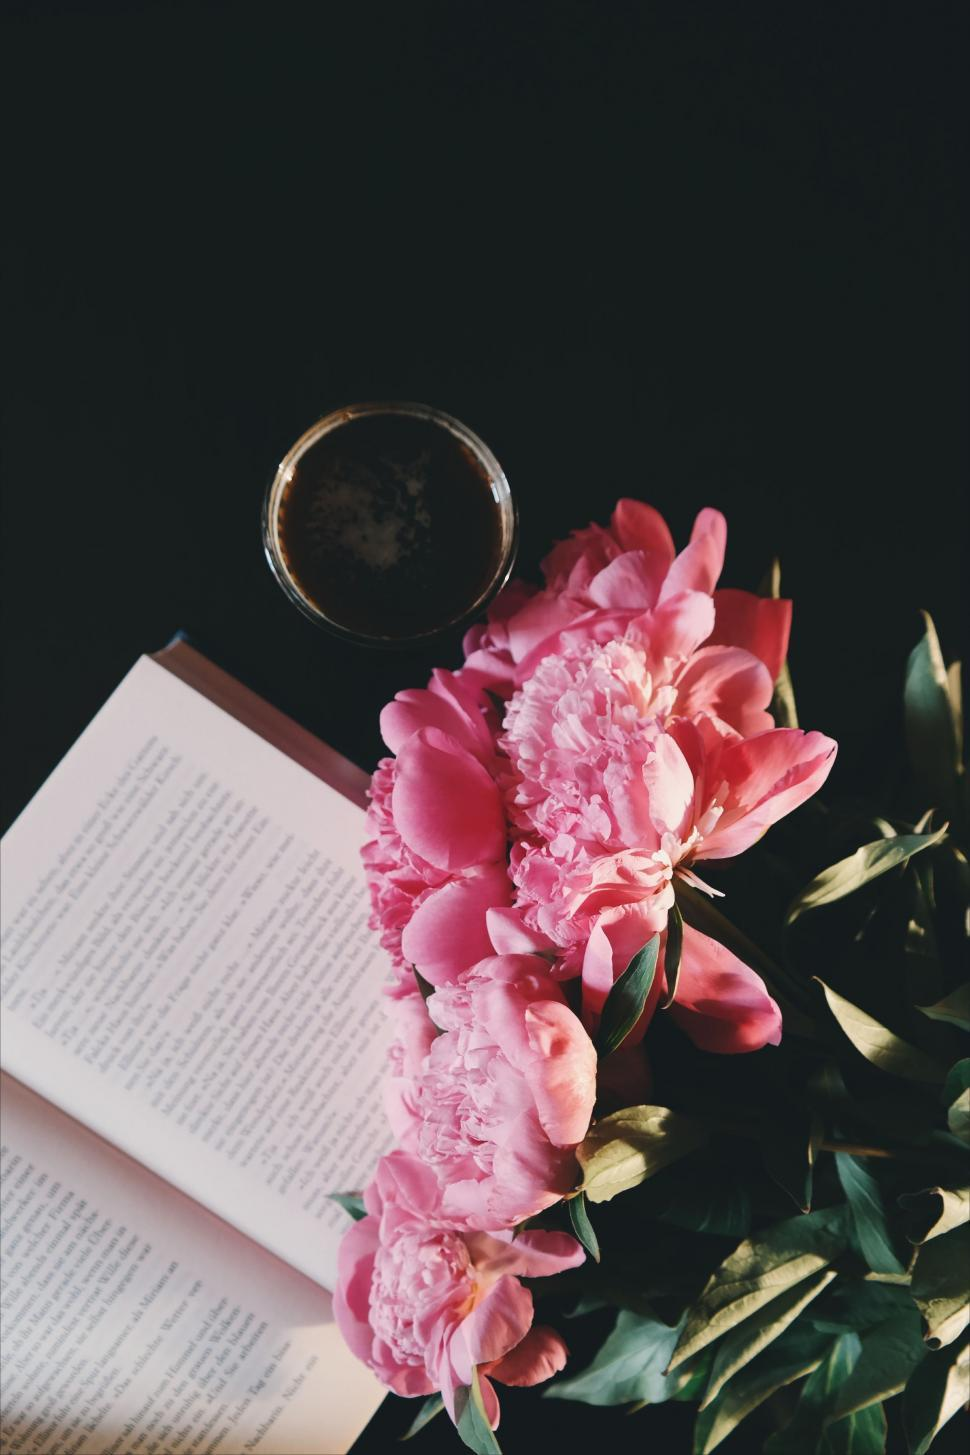 Download Free Stock HD Photo of Book and Flowers With Black Coffee  Online